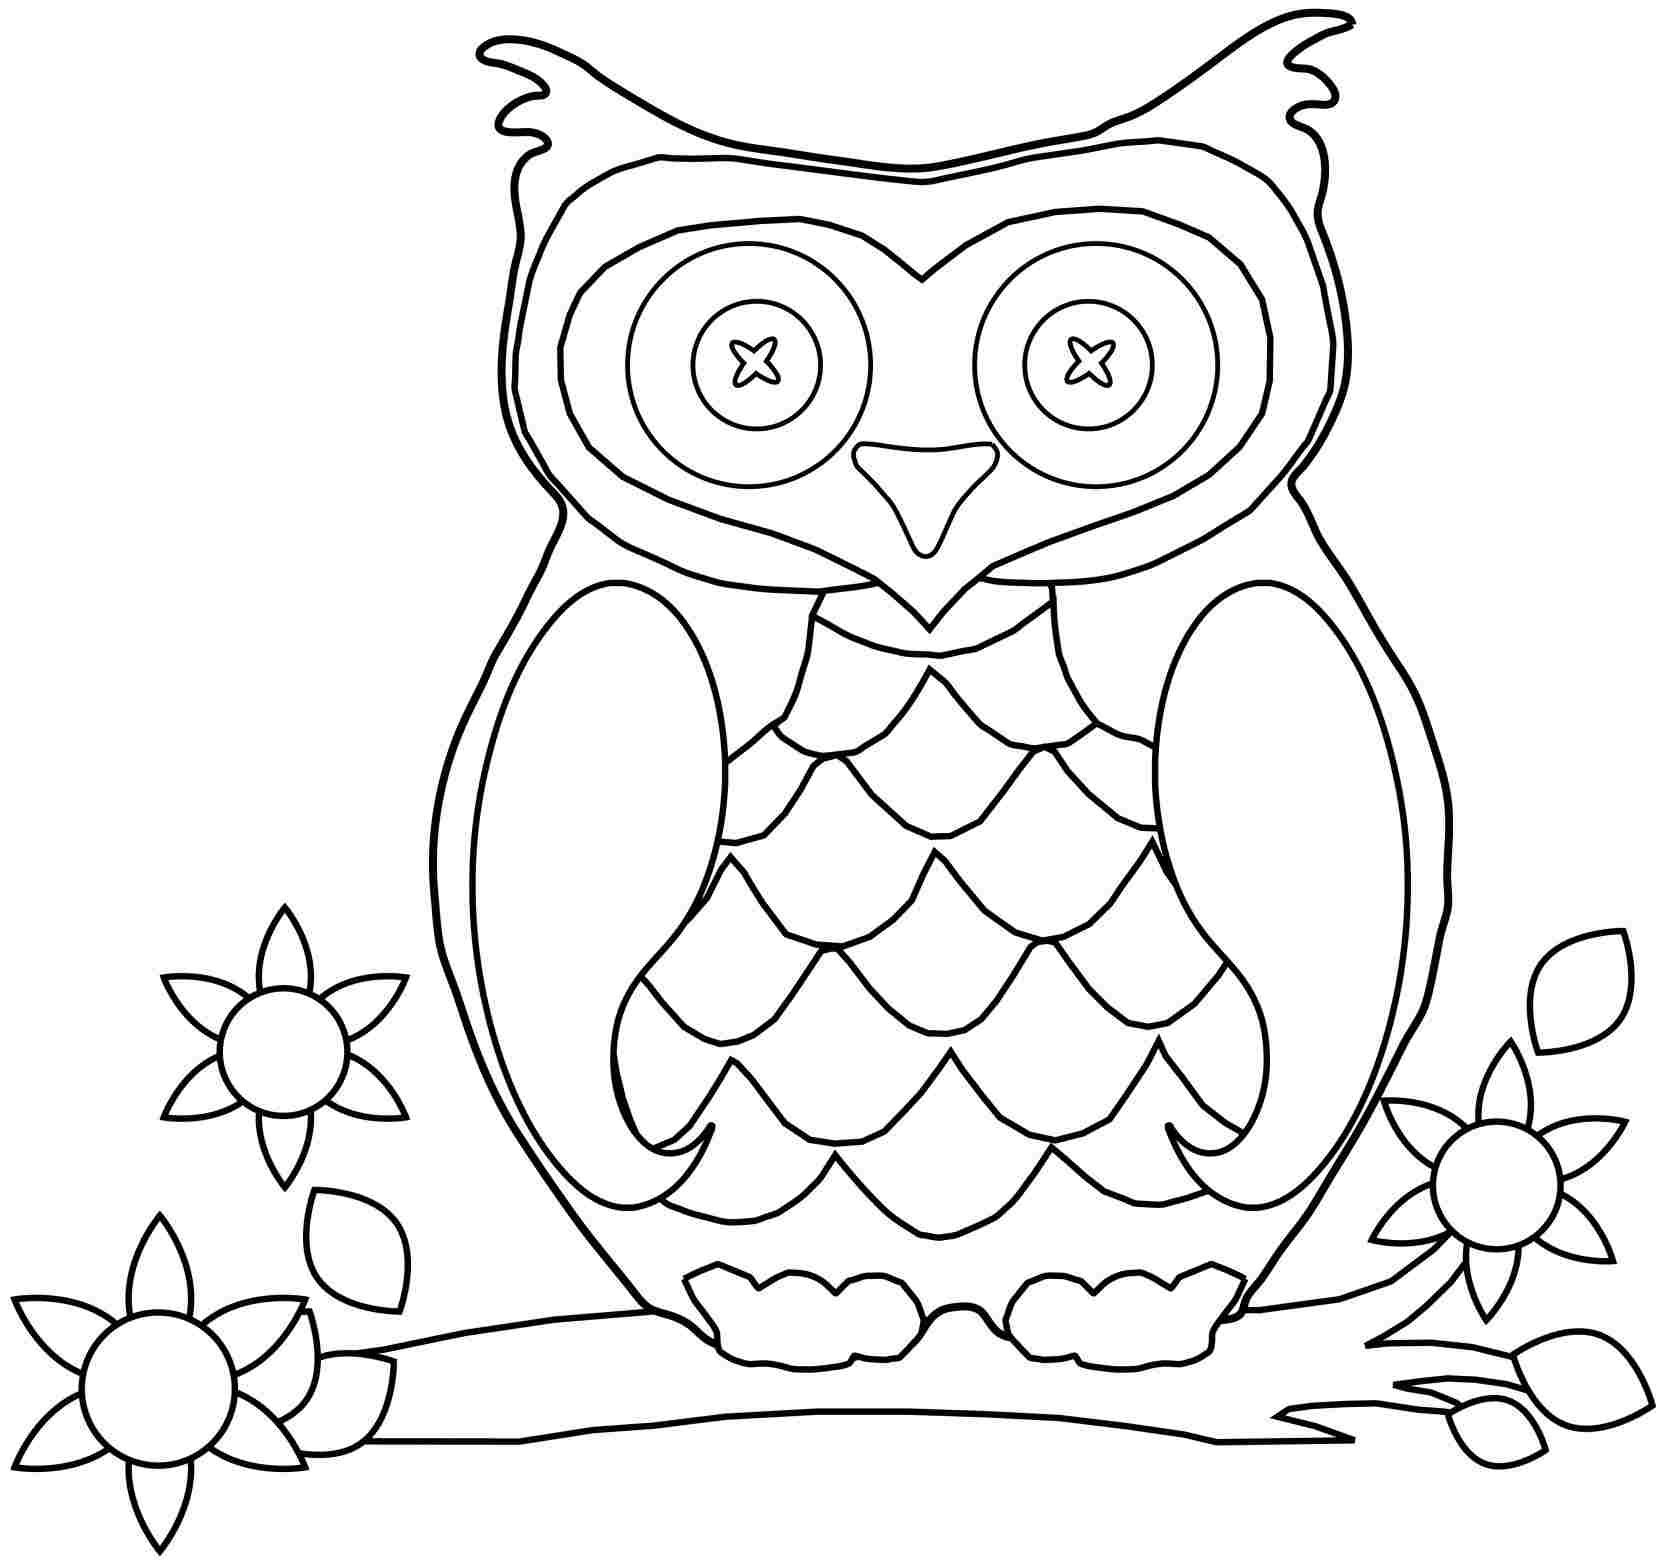 Printable Owl Picture | Owl Printable Coloring Pages